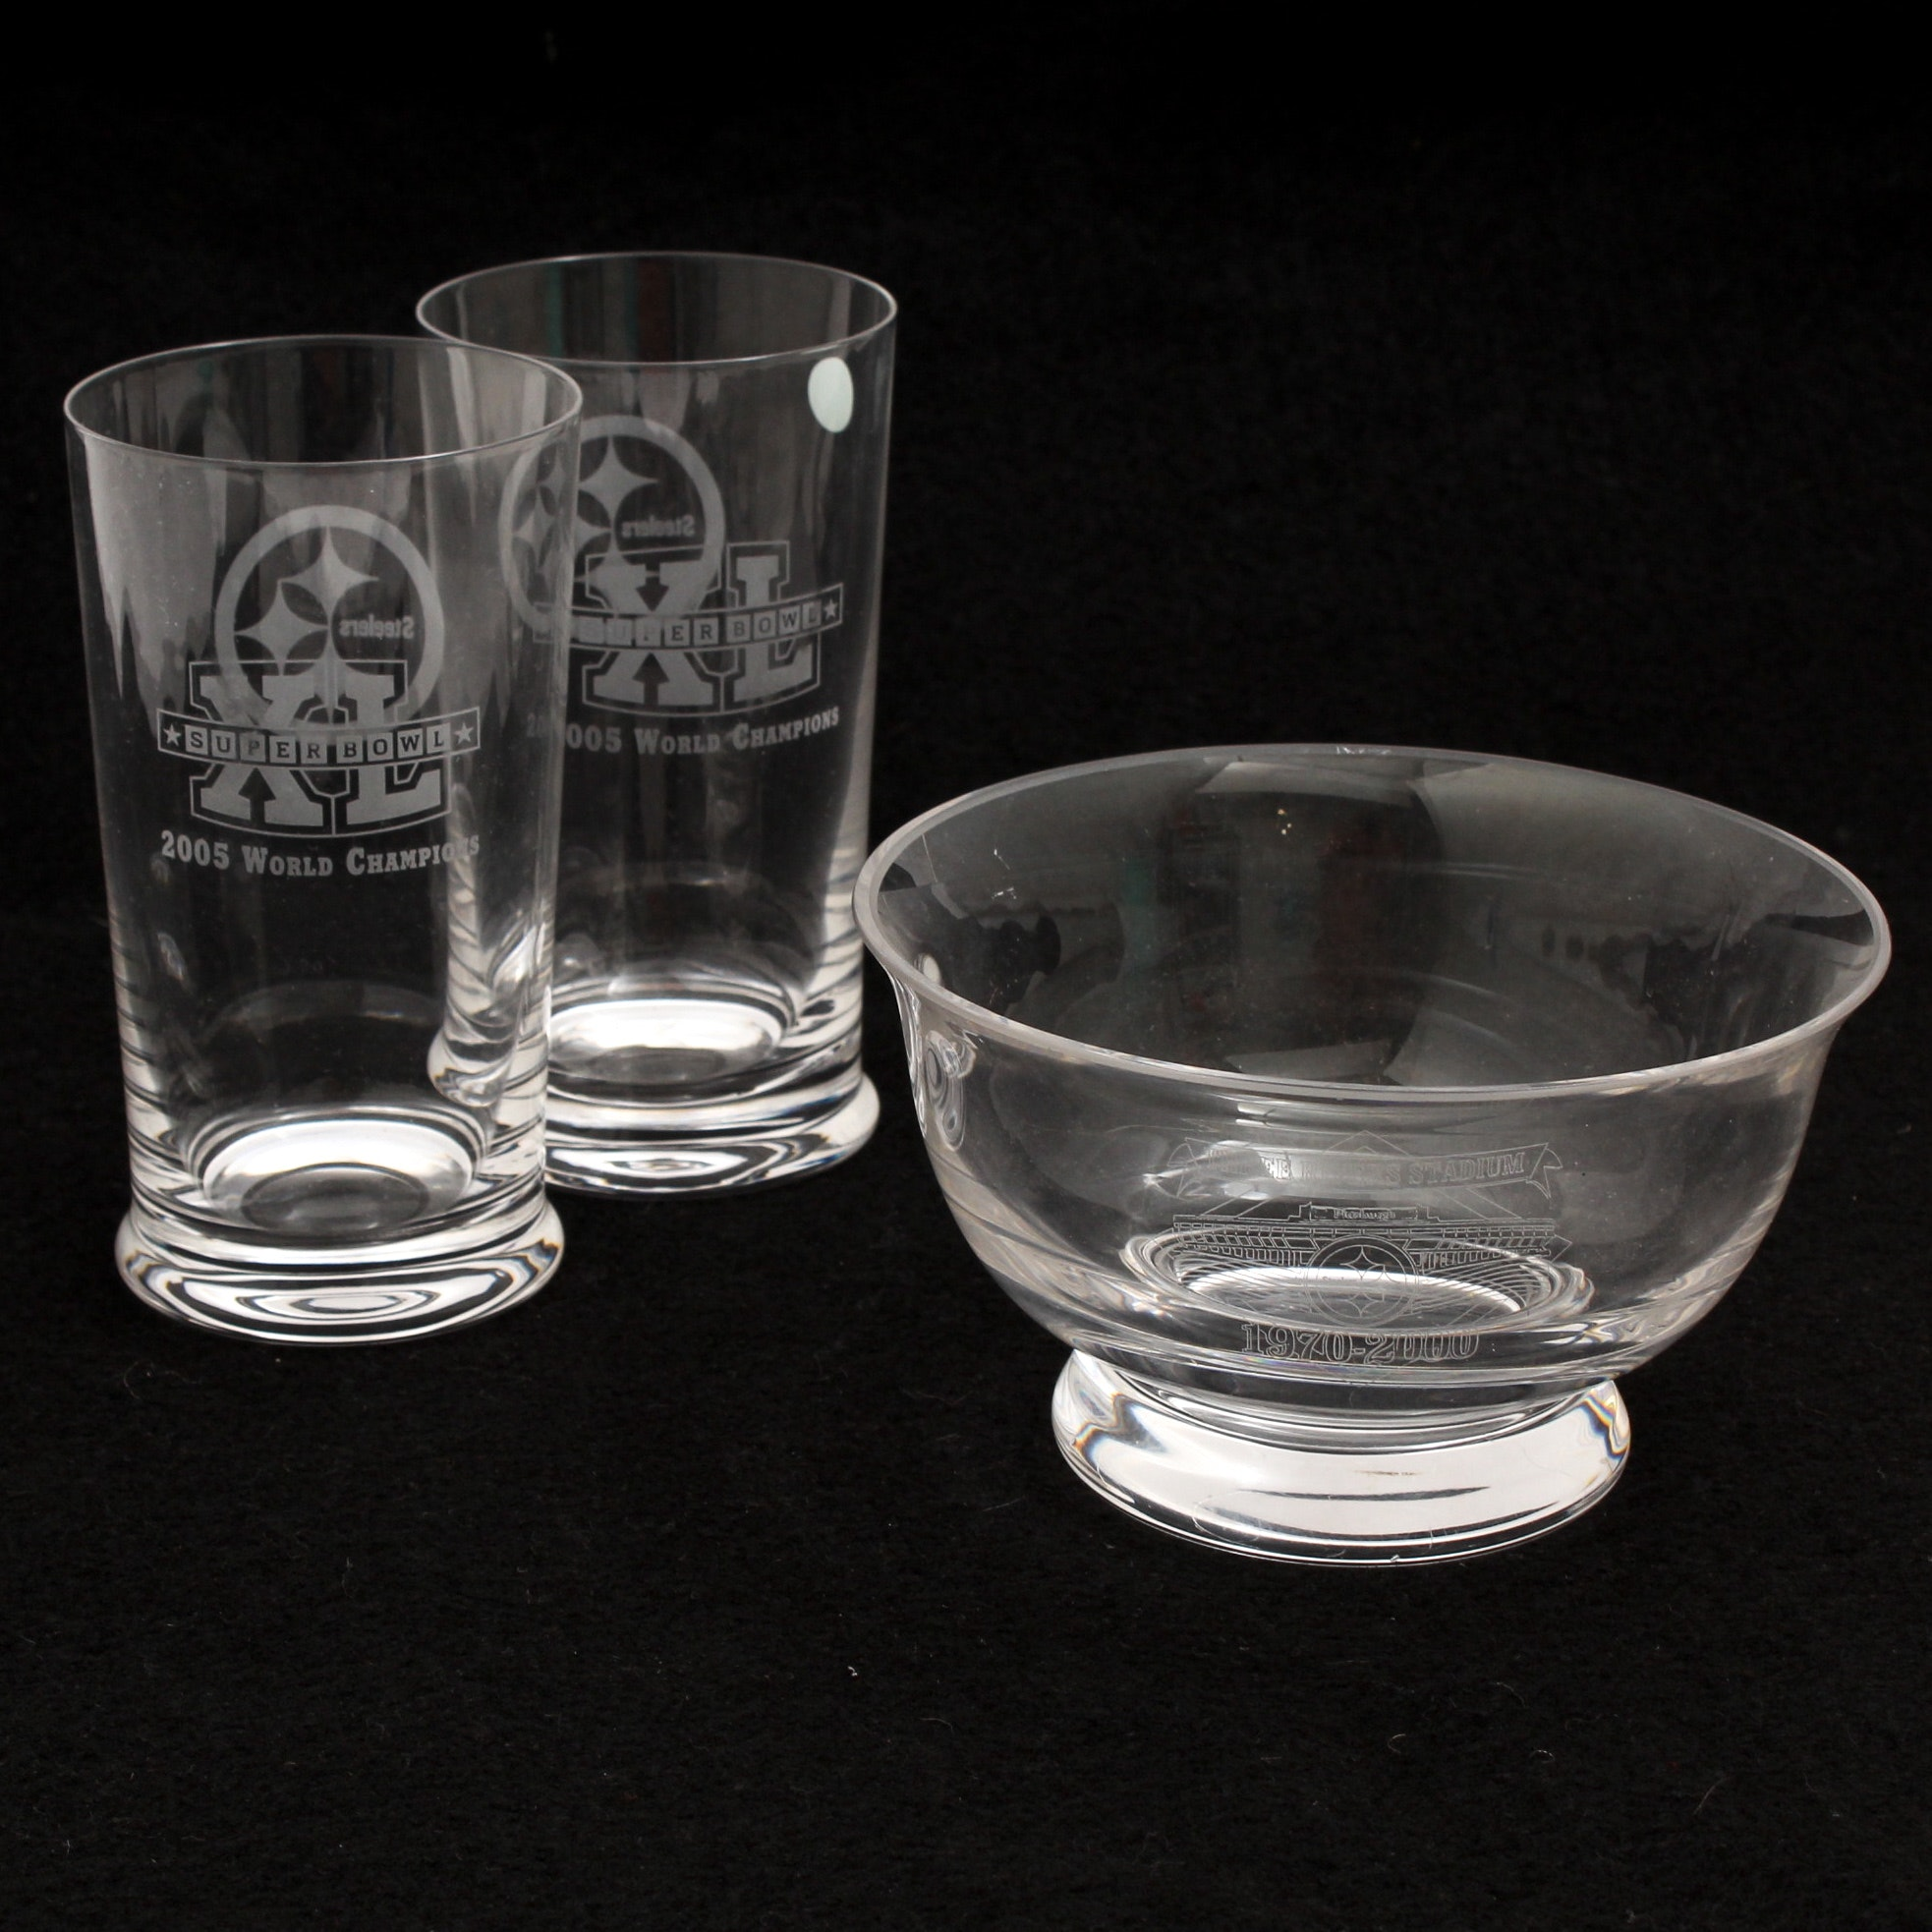 Tiffany & Co. Pittsburgh Steelers Commemorative Bowl and Glasses